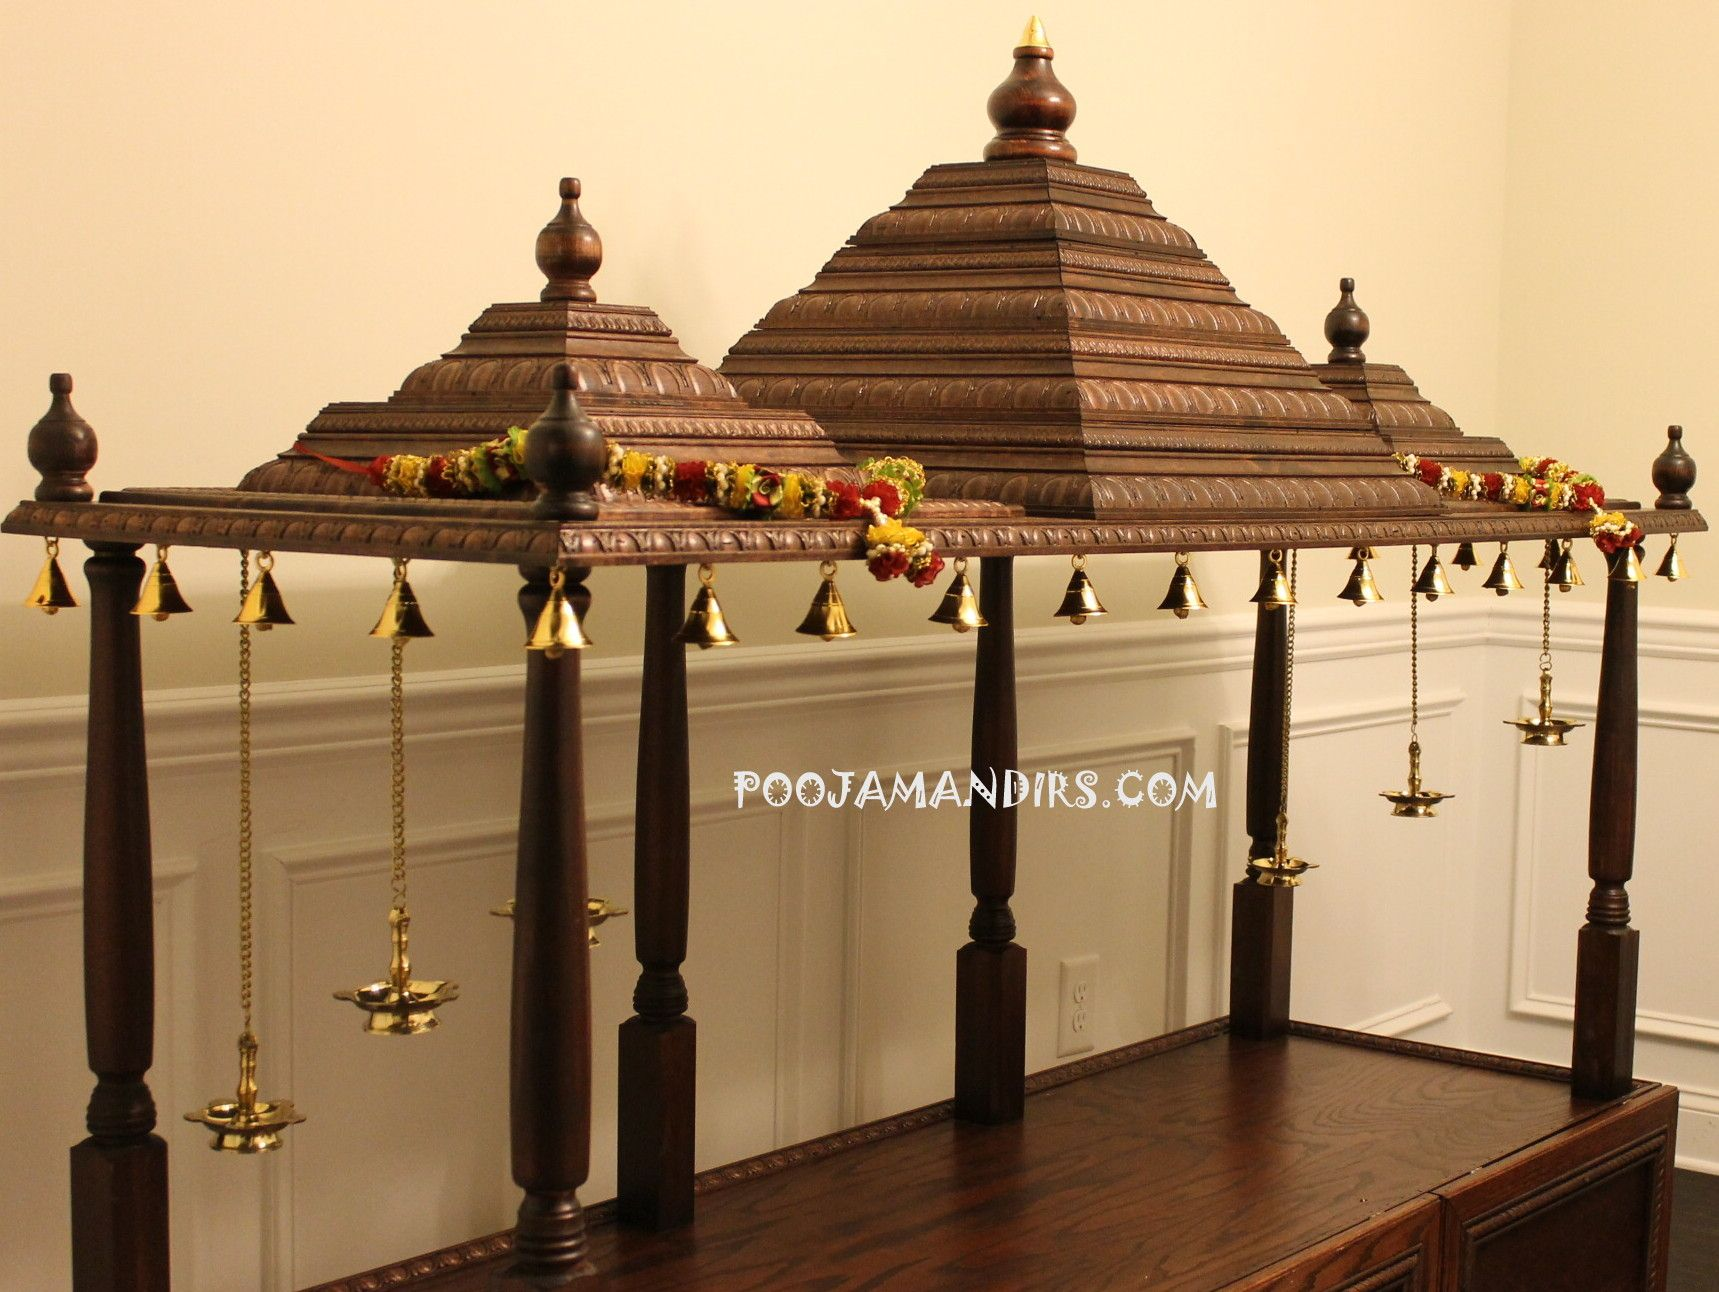 Wooden temple designs for home small temple for home wooden home - Custom Pooja Mandirs Made In The Usa Cary North Carolina Cary North Carolinapuja Roomkrishnadesign For Homeprayer Roomtemplesganeshchair Design Hinduism